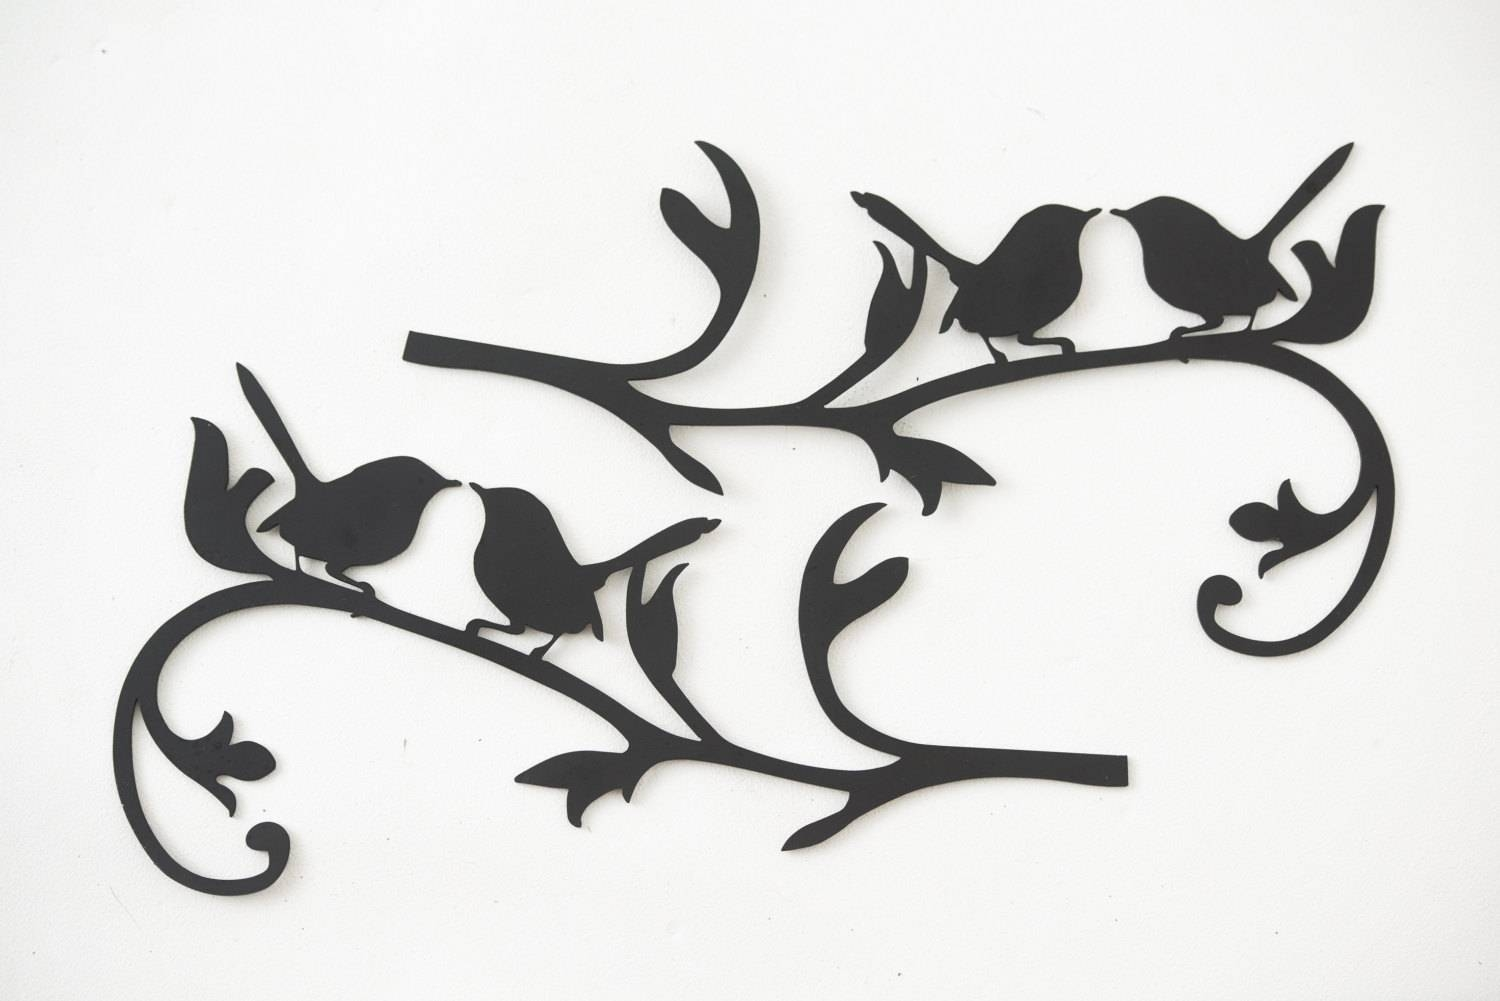 Wall Art Designs: Metal Bird Wall Art Hand Drawn And Laser Cut Regarding 2017 Birds On A Branch Metal Wall Art (View 13 of 20)